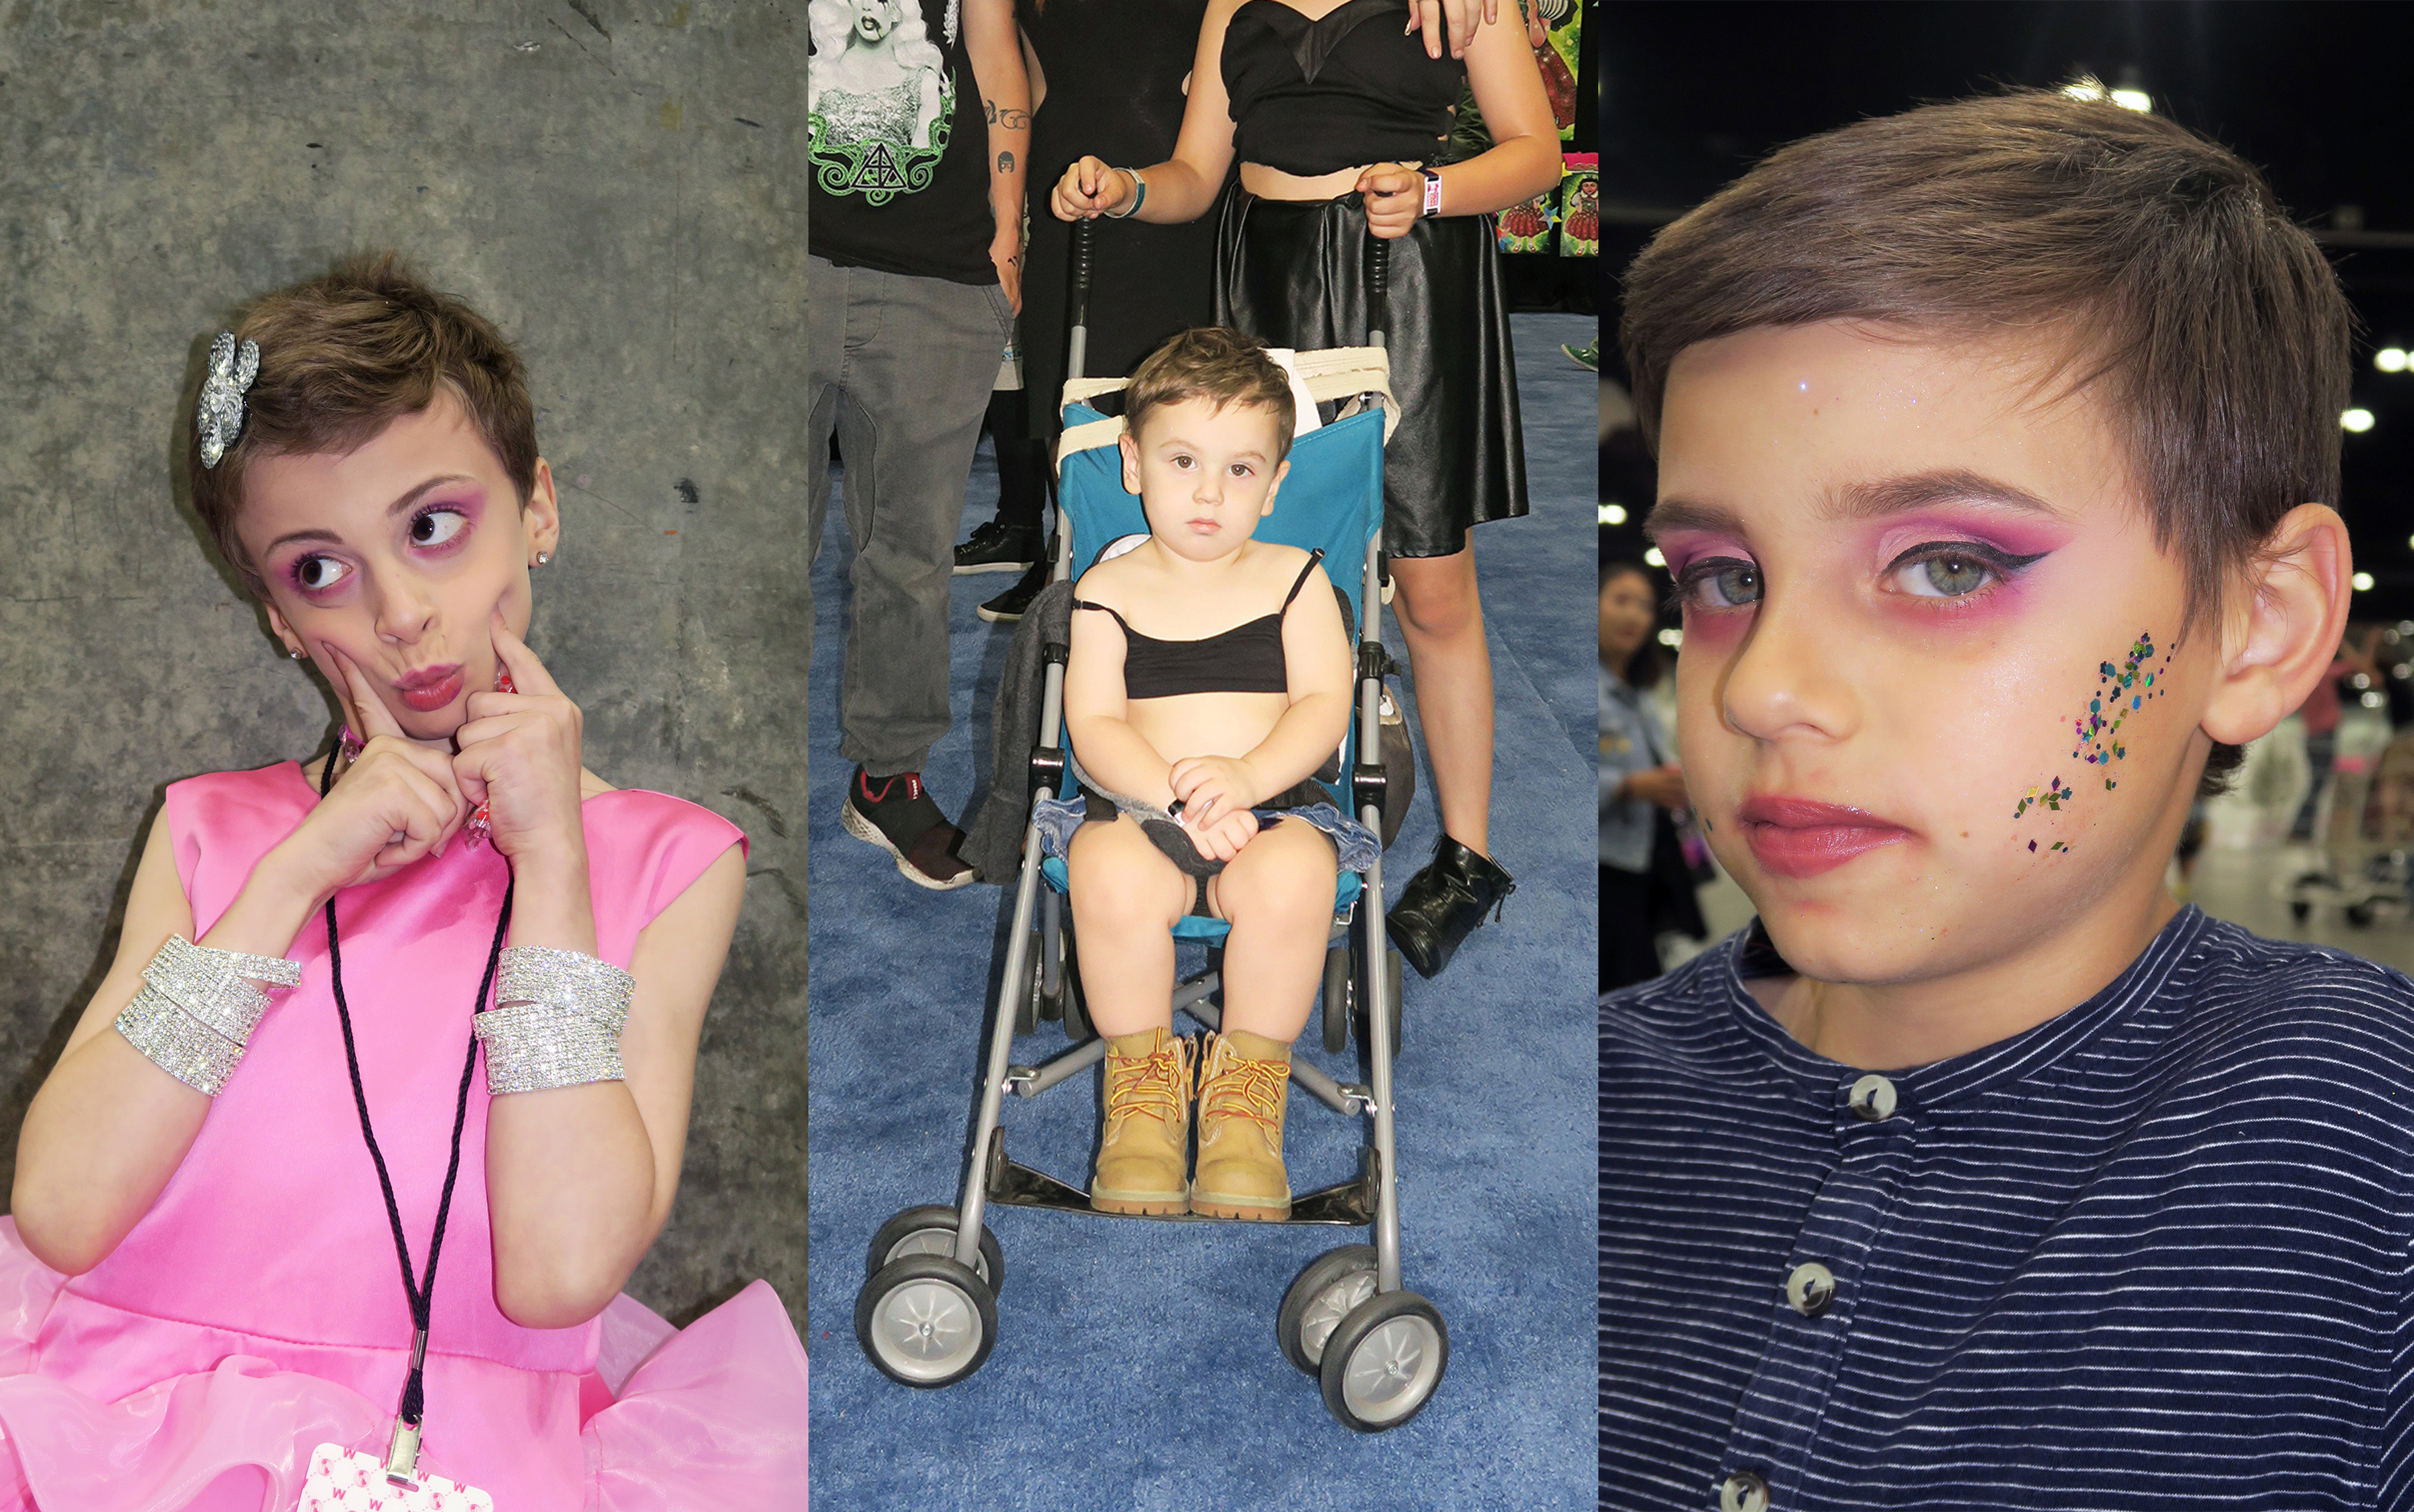 b3afad676c19 🔥🔥🔥 Photos of the Fabulous Kids of RuPaul's Drag Convention - VICE